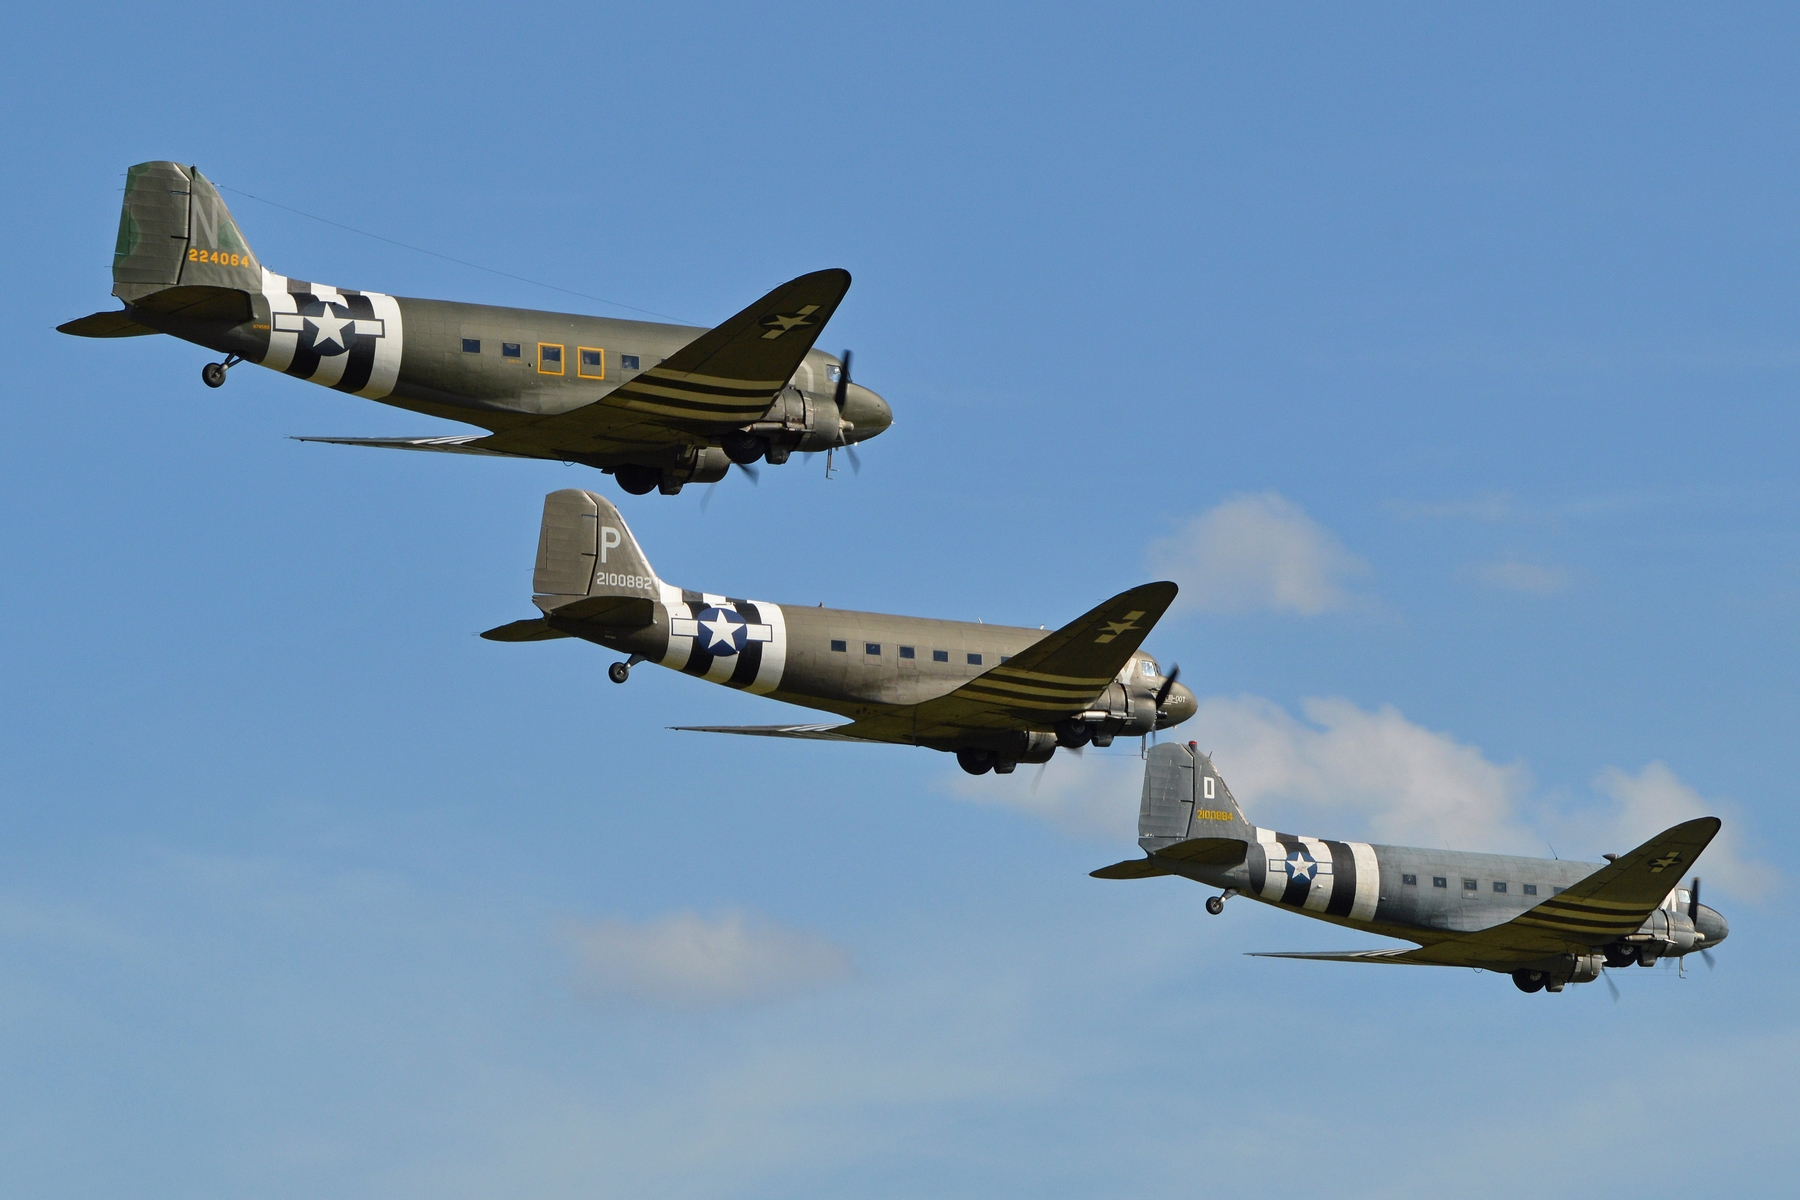 IWM Presents: D-Day 75 Daks Over Duxford